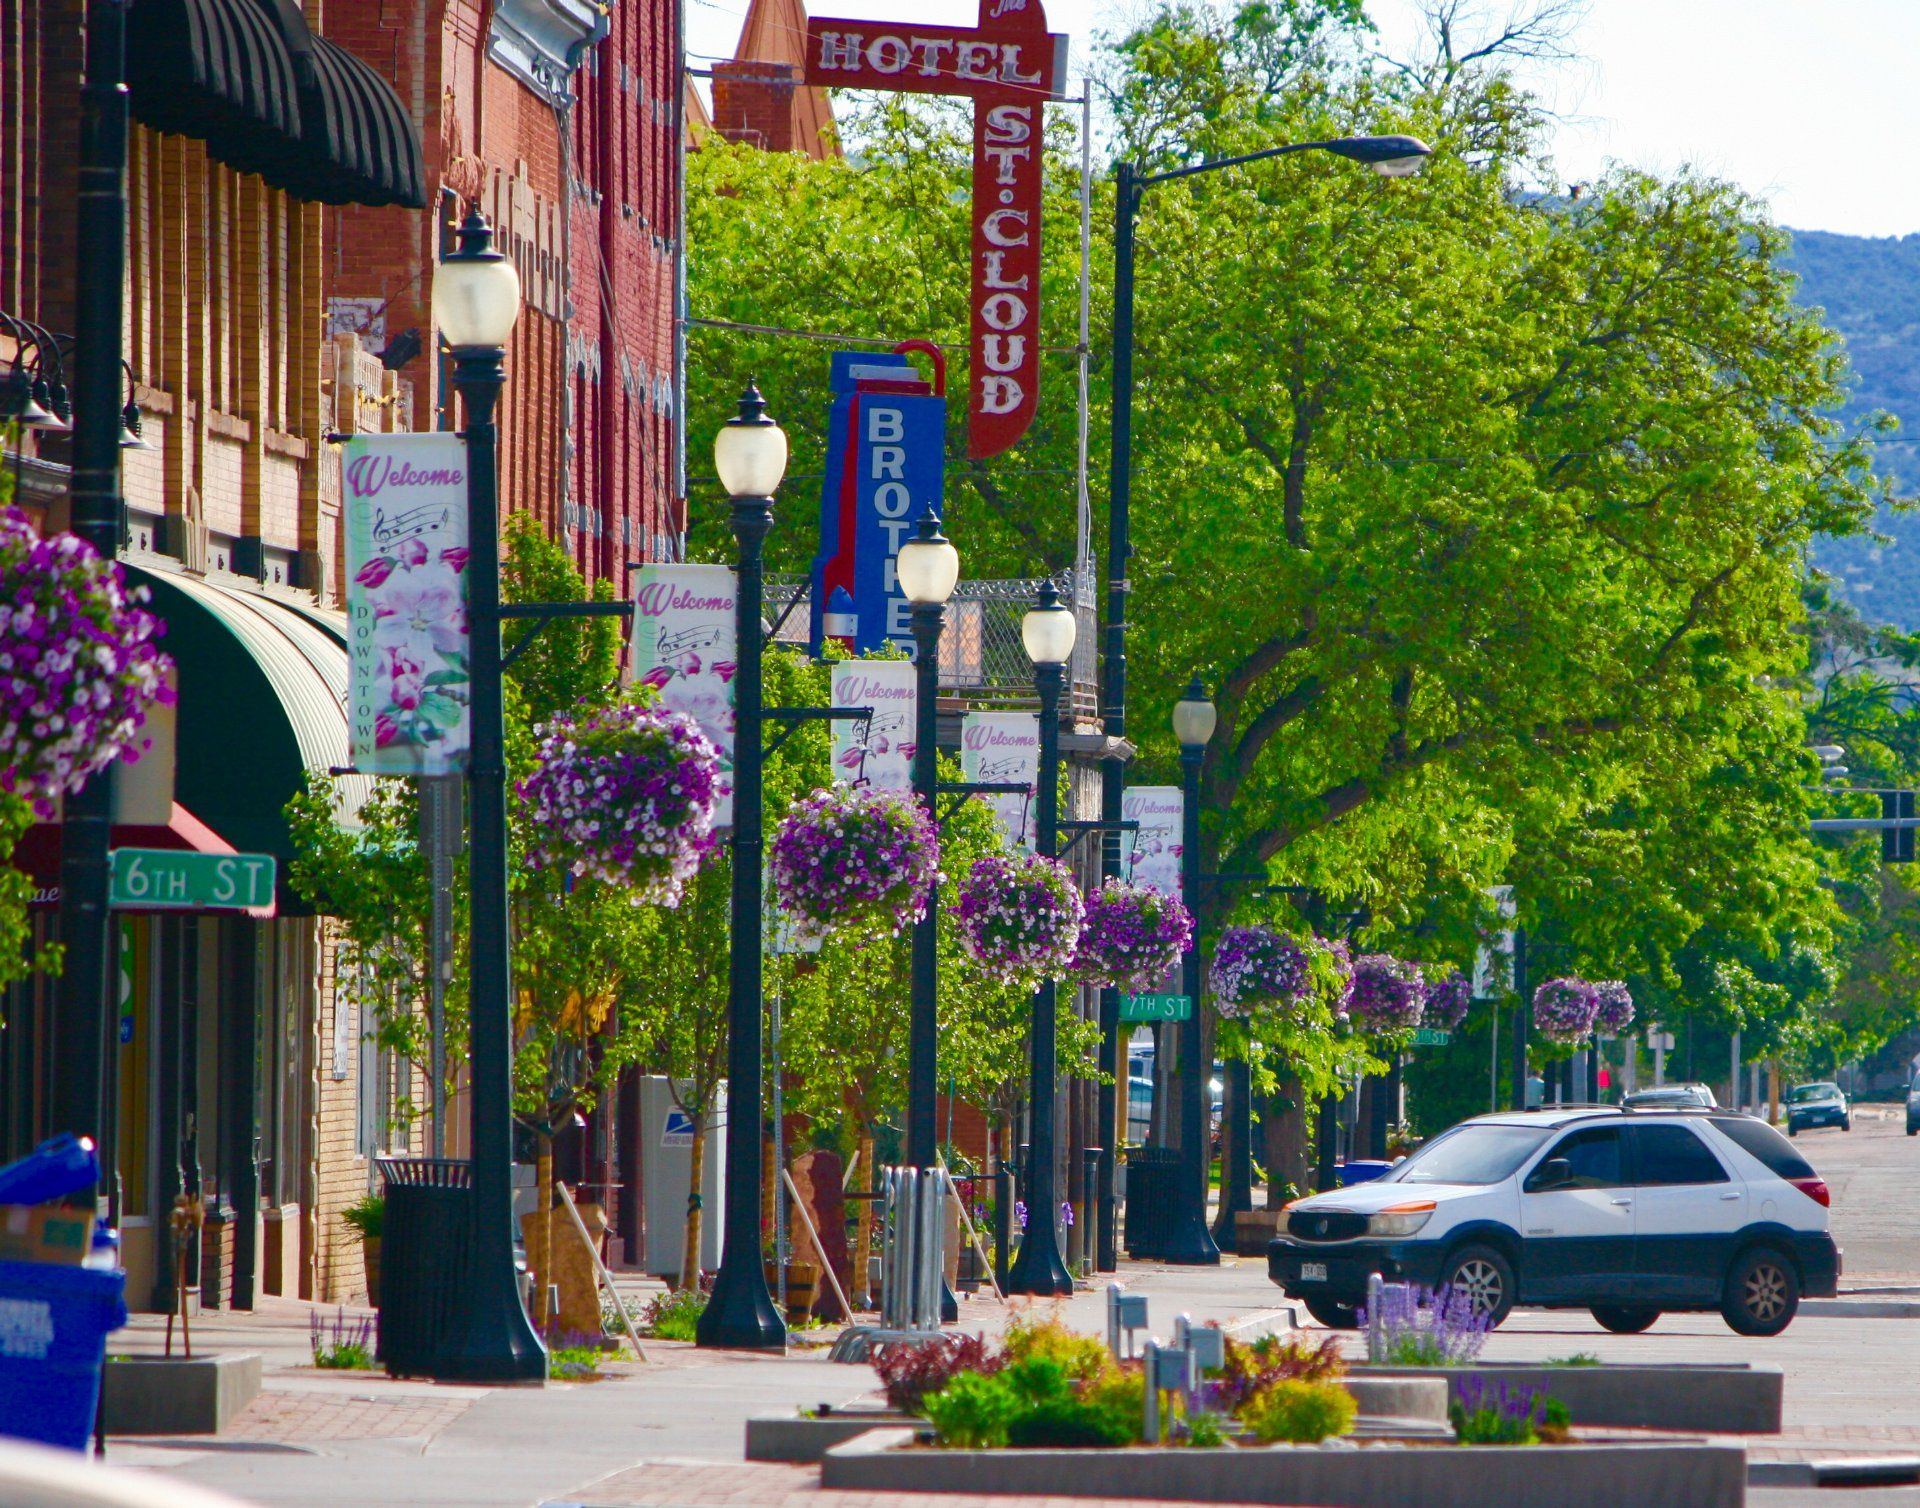 Flower Baskets In Bloom Historic Downtown Canon City Colorado Canon City Canon City Colorado Colorado Native